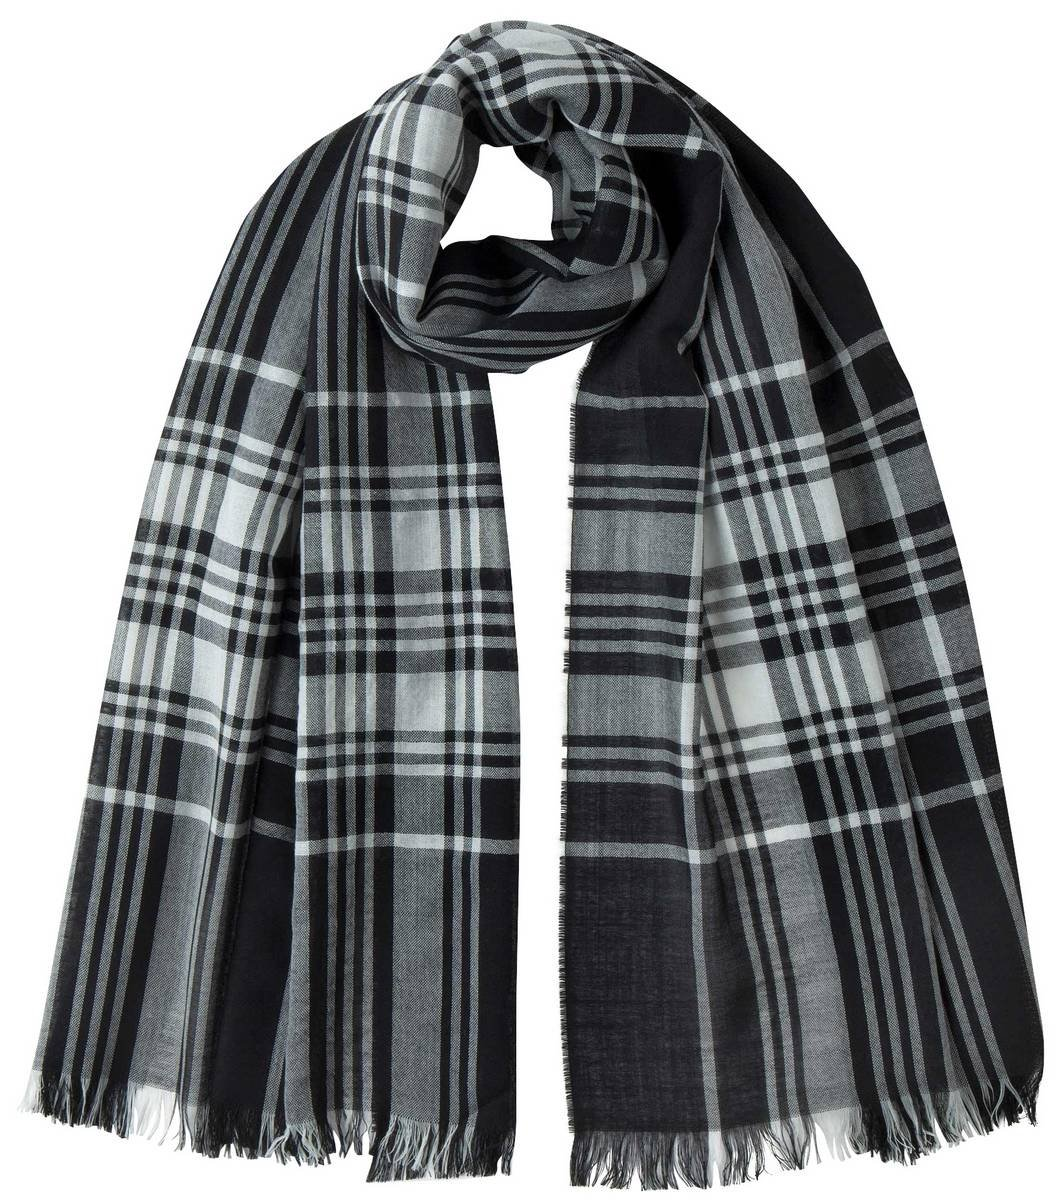 Black/White Stewart Extra Fine Wide Tartan Scarf by Johnstons of Elgin